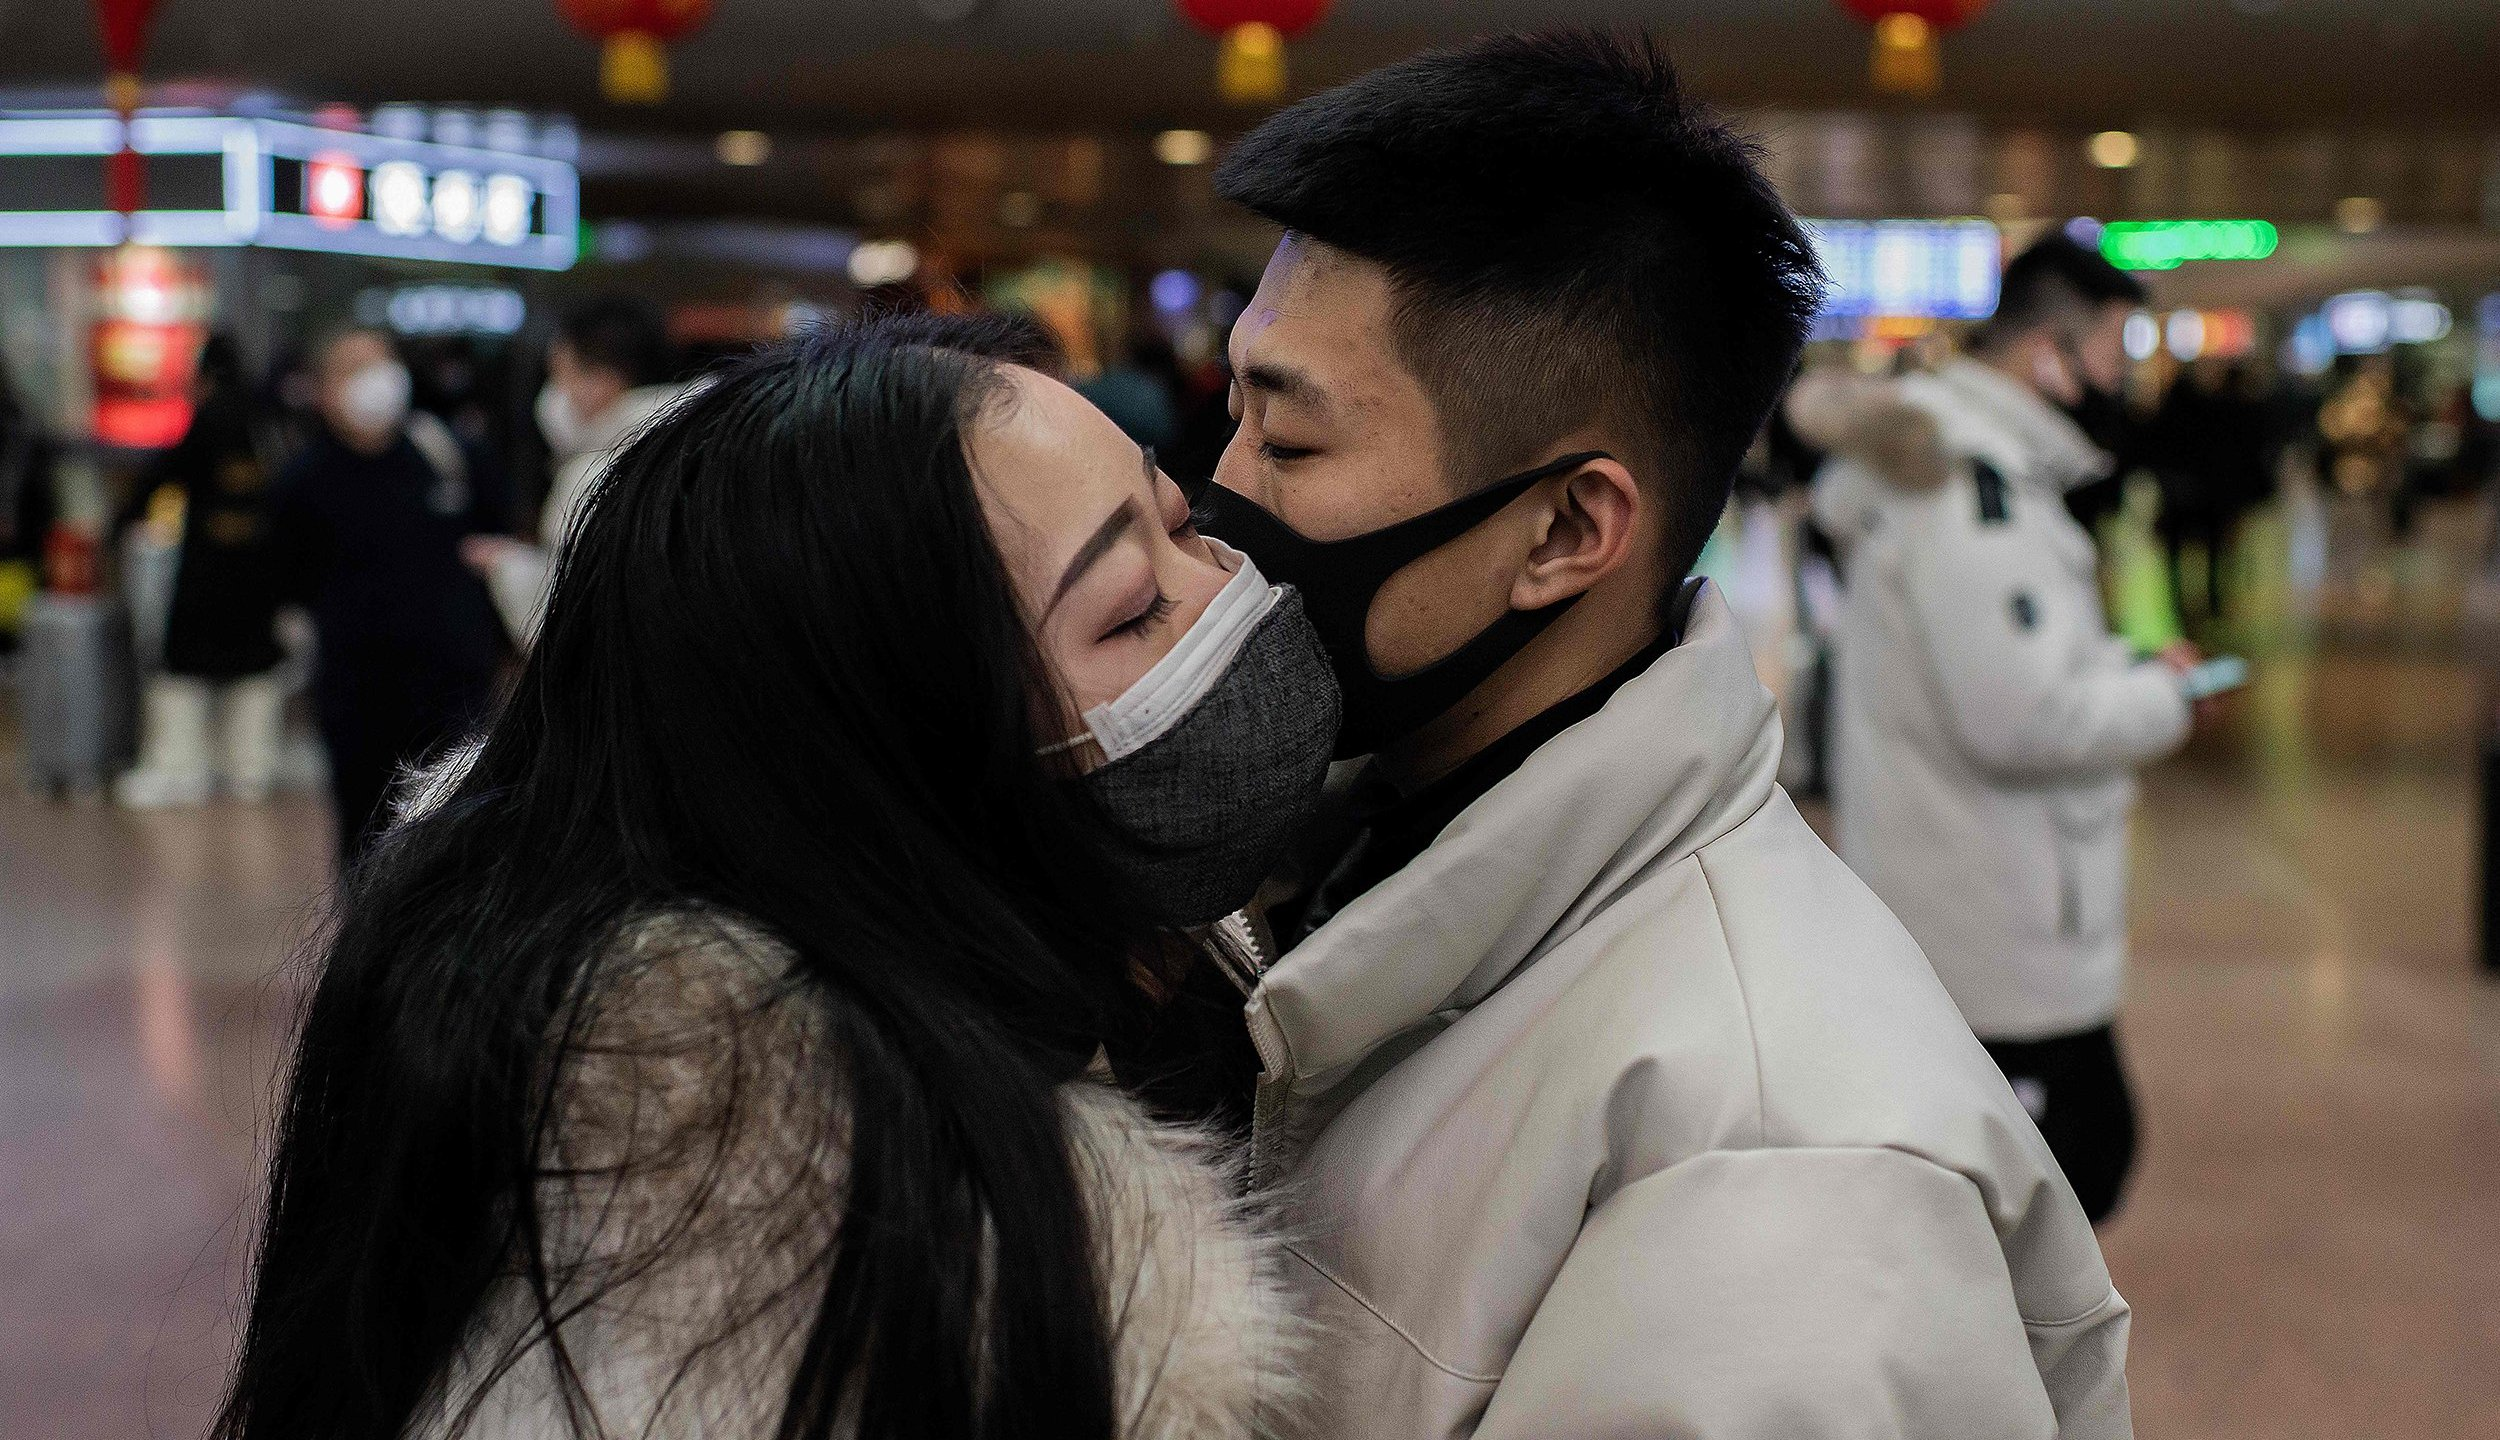 TOPSHOT - A couple, wearing protective masks, kisses goodbye as they travel for the Lunar New Year holidays, at Beijing West Railway Station in Beijing on January 24, 2020. - Chinese authorities rapidly expanded a mammoth quarantine effort aimed at containing a deadly contagion on January 24 to 13 cities and a staggering 41 million people, as nervous residents were checked for fevers and the death toll climbed to 26.